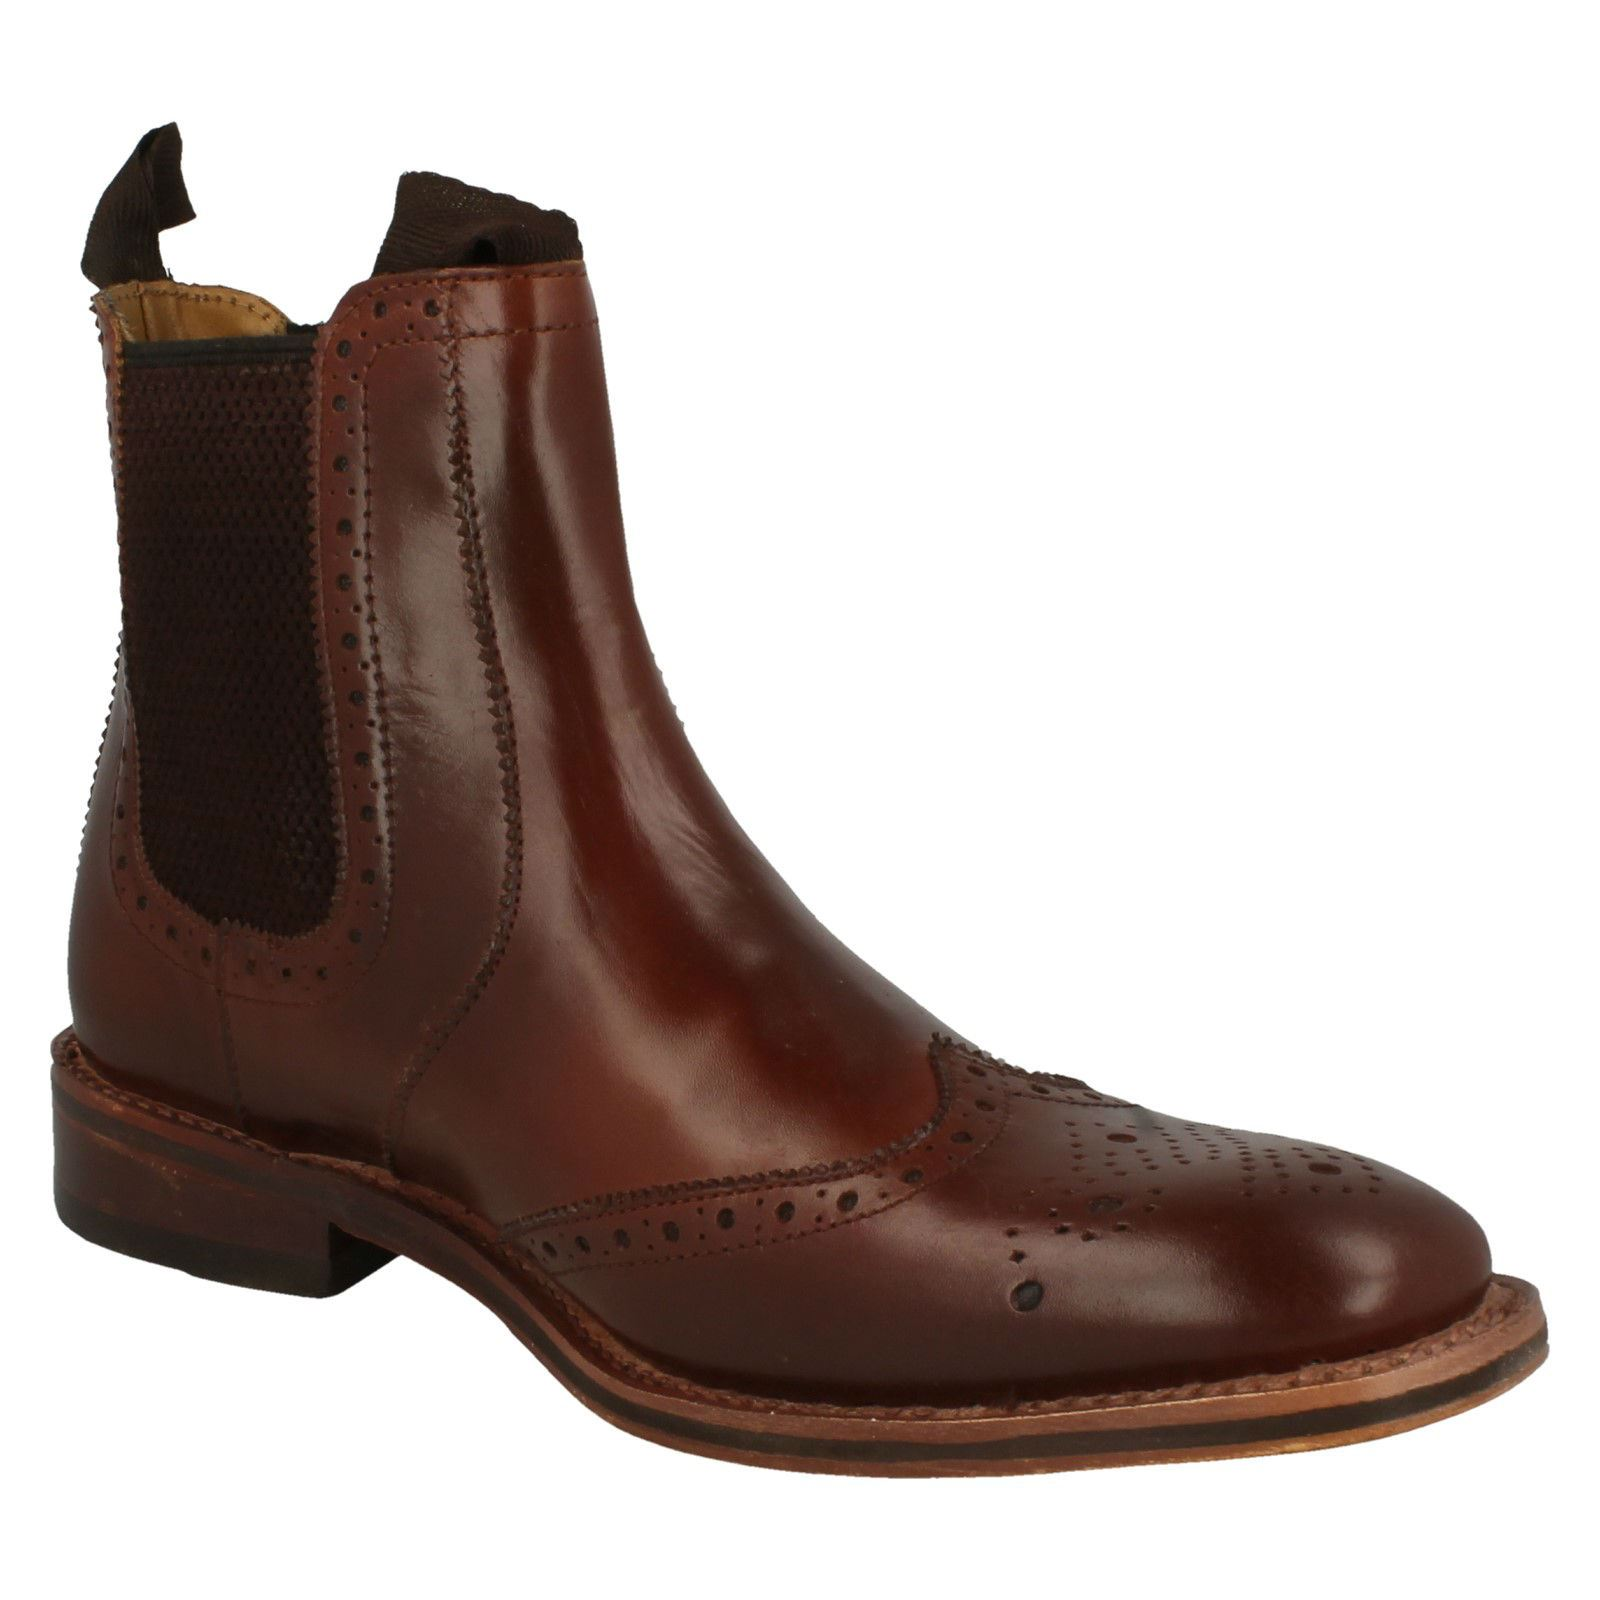 Mens-Catesby-Ankle-Boots-MCATESCW158T thumbnail 13